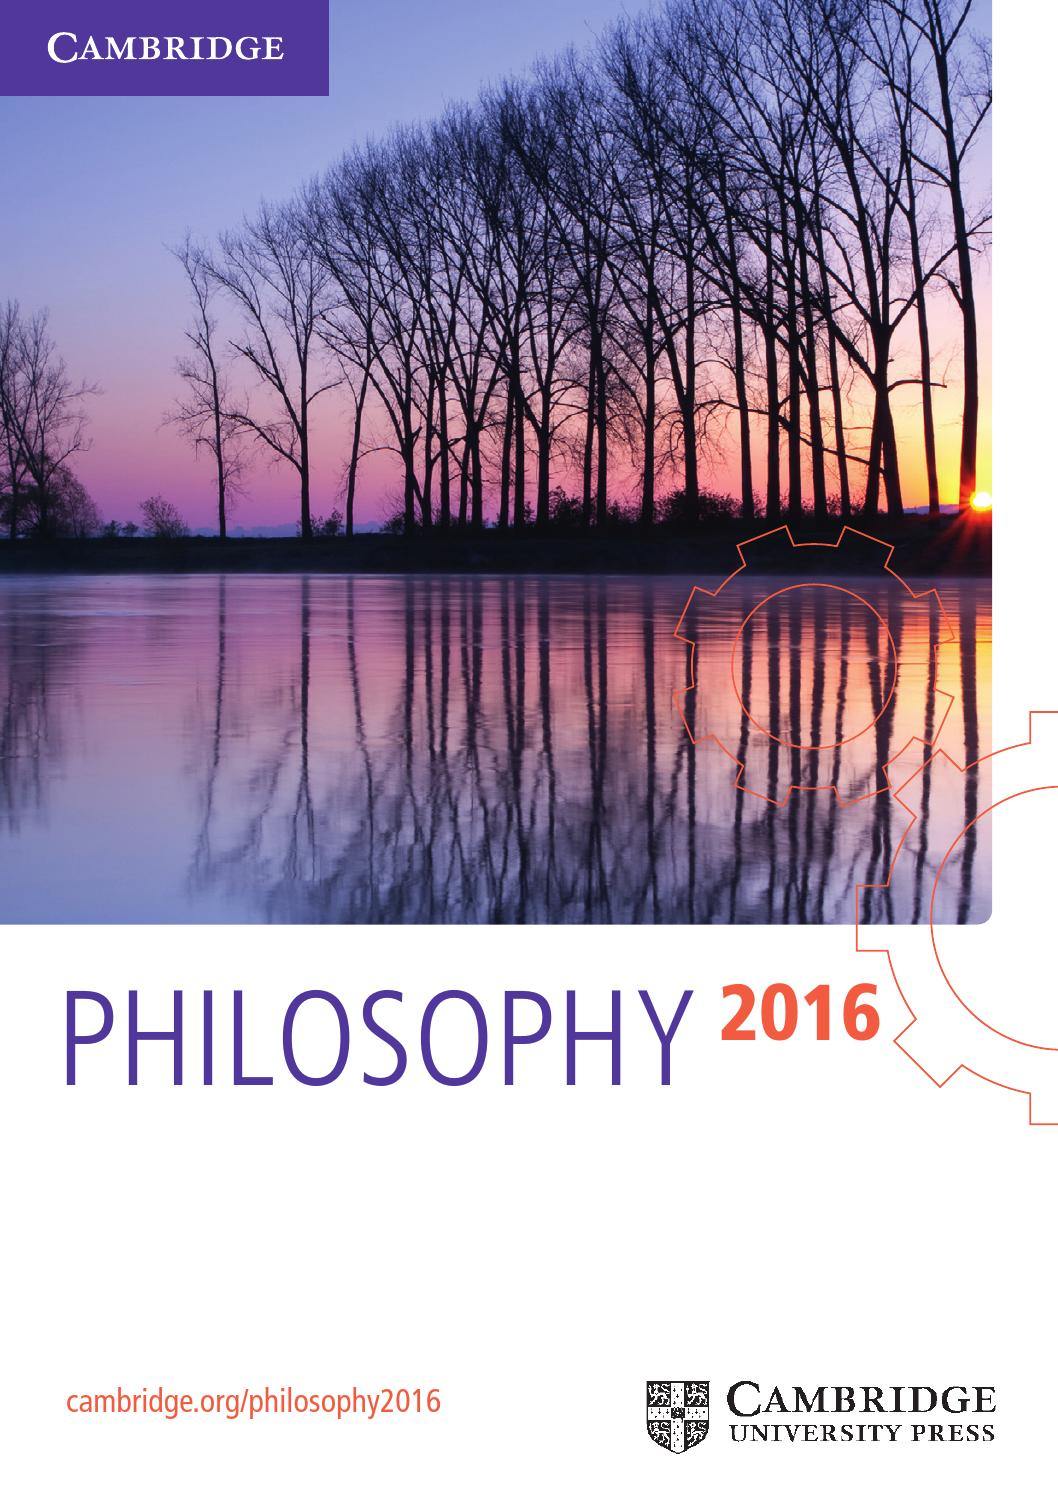 philosophy: the basics by nigel warburton pdf